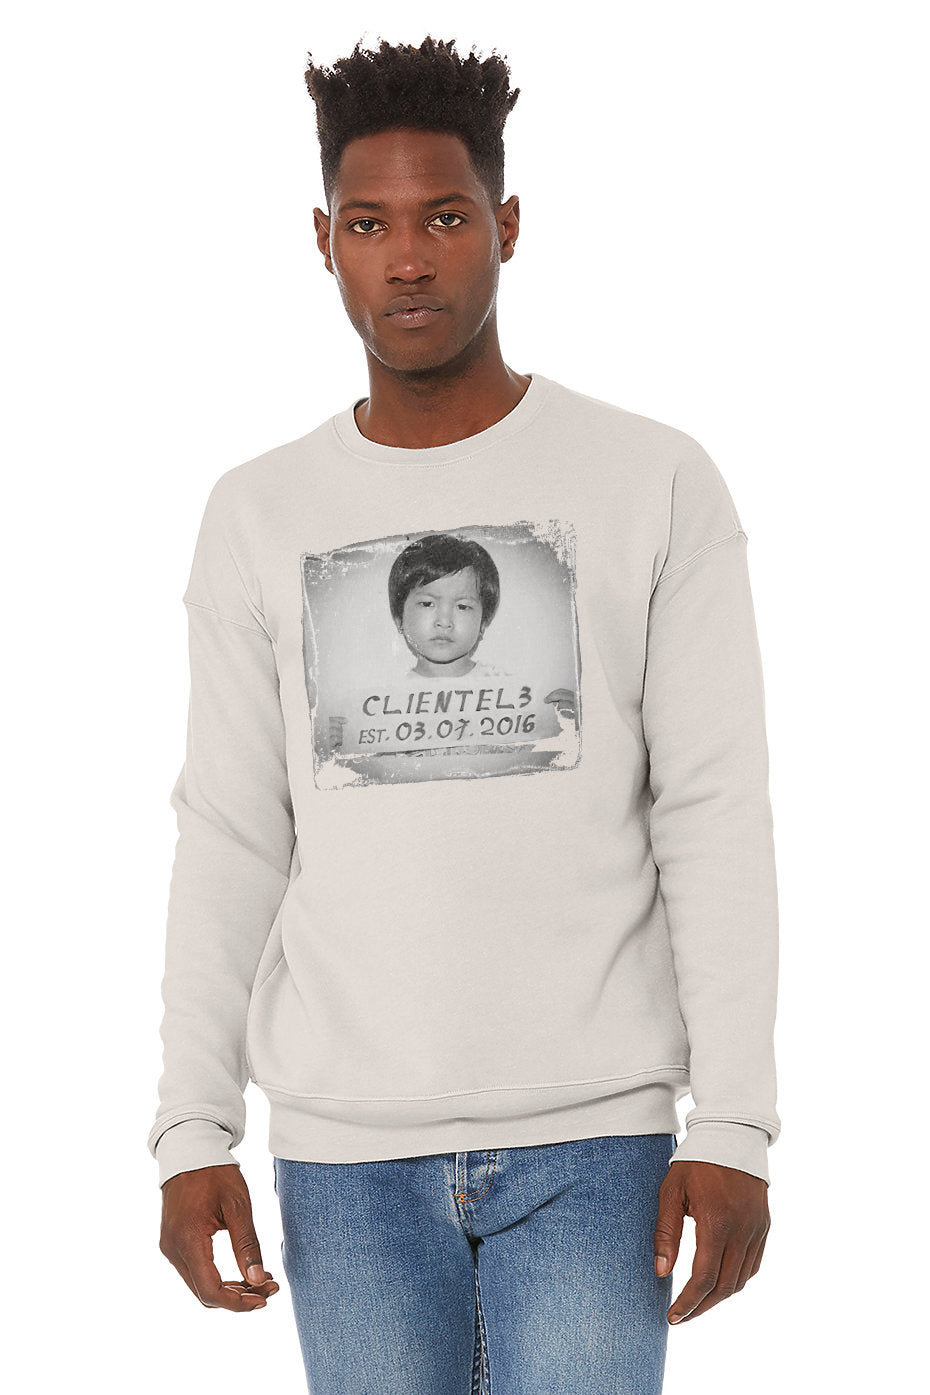 Immigrant - Unisex Heather Dust Cotton Poly Crewneck Sweatshirt by C3